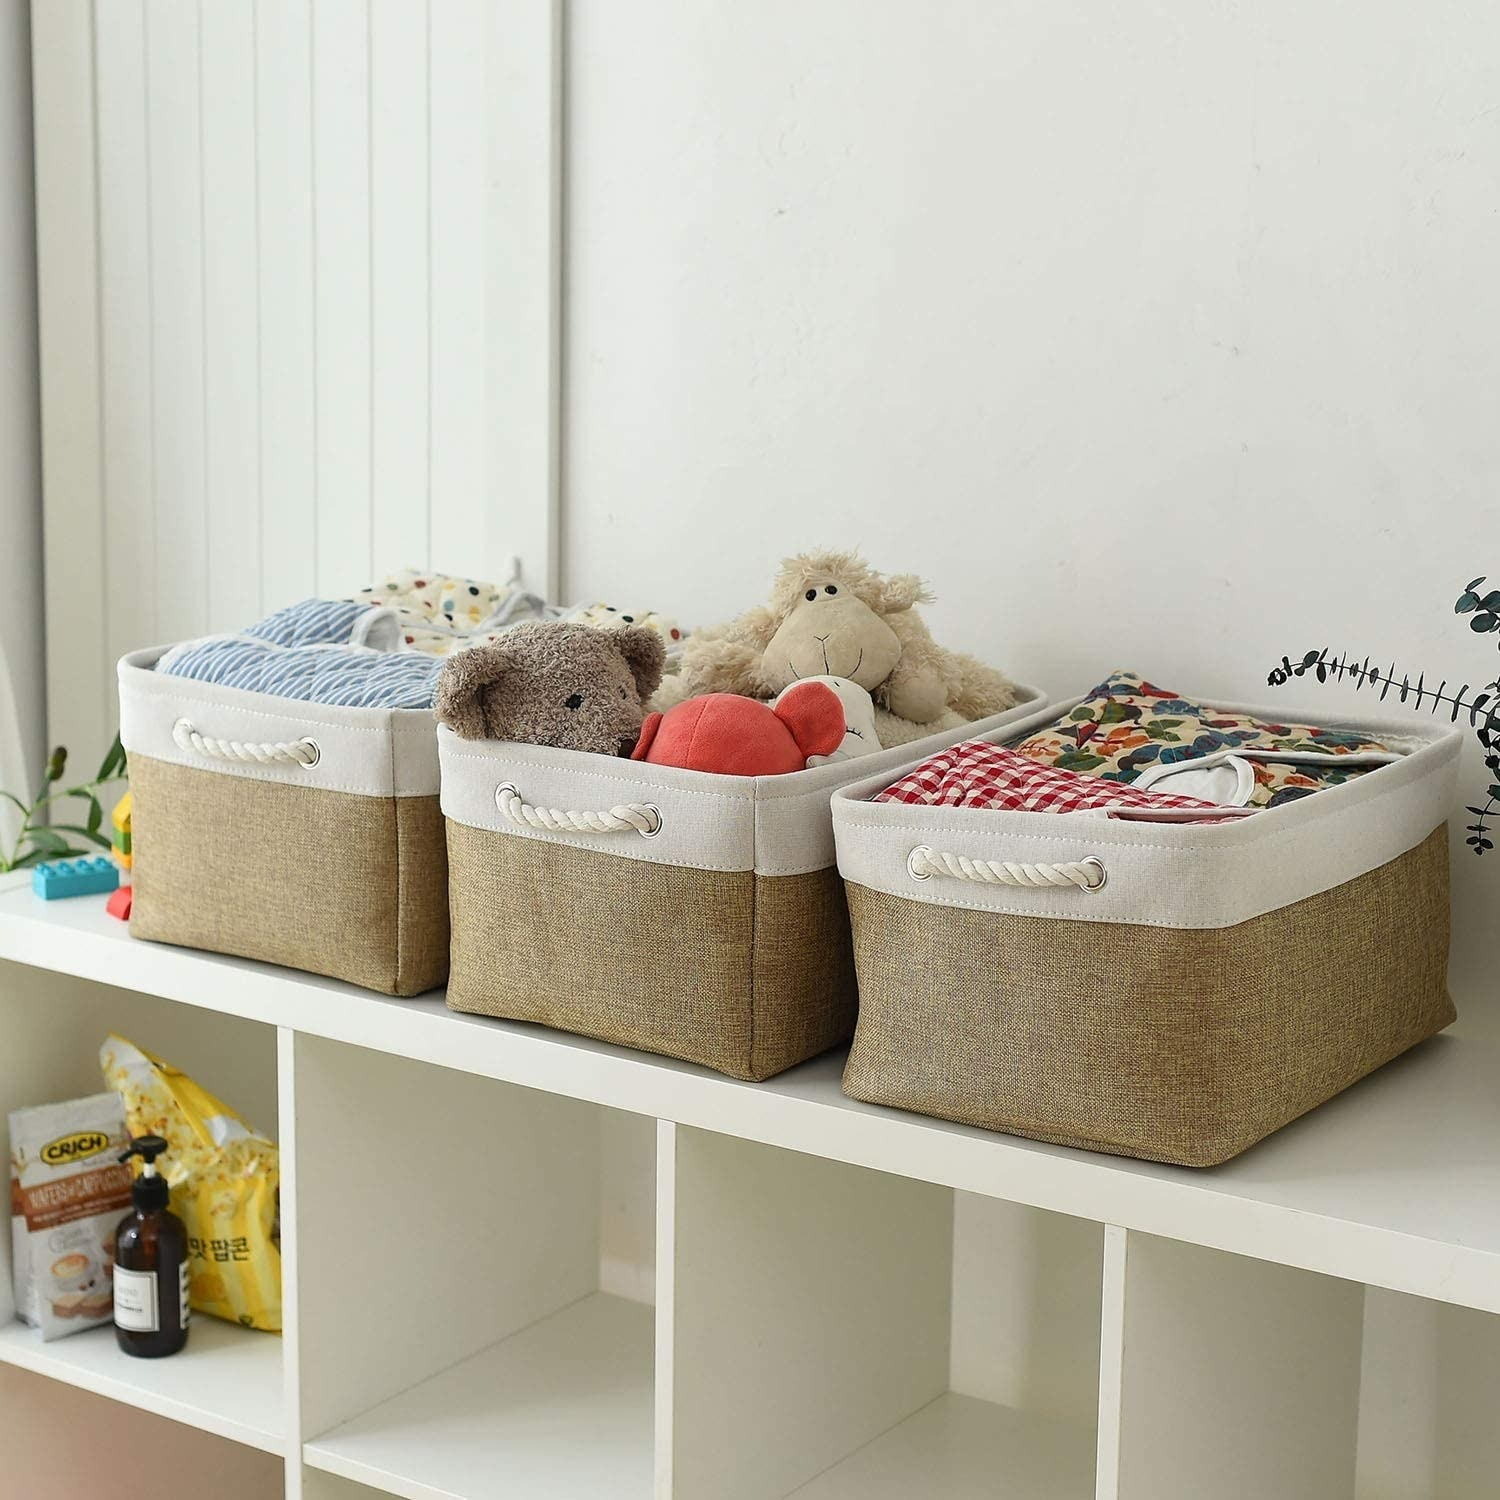 The storage baskets in use filled with baby knick knacks